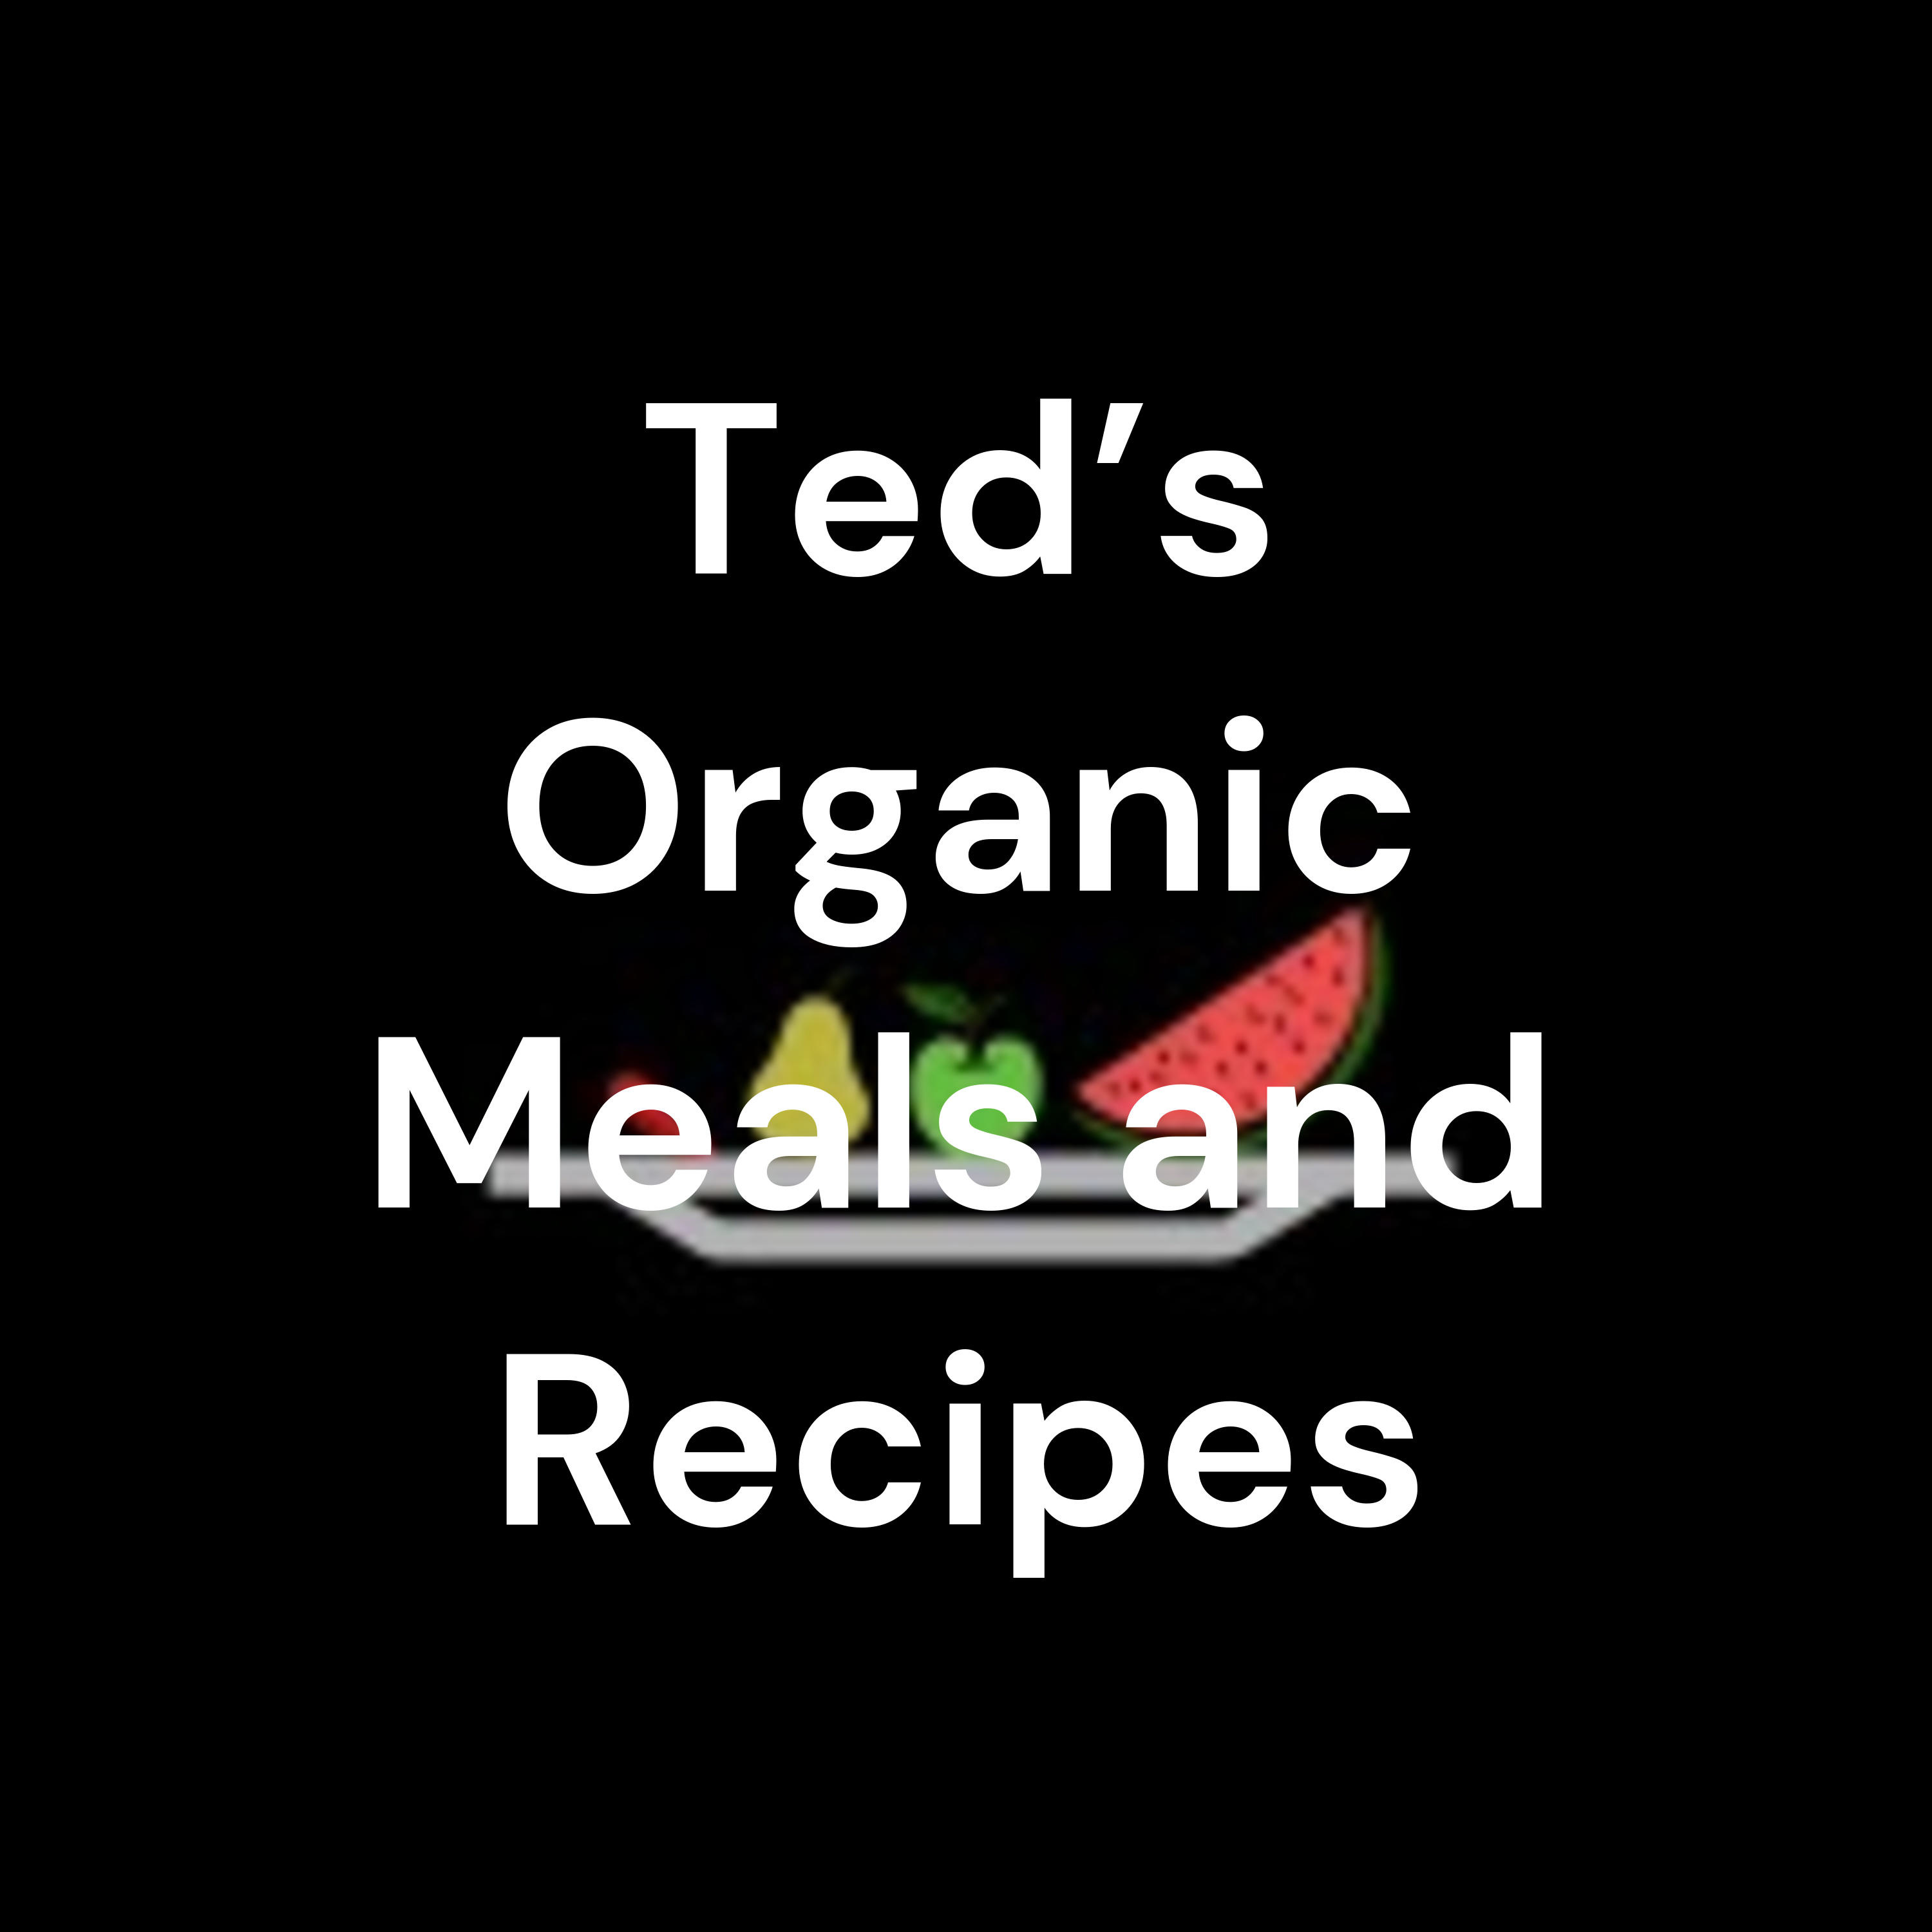 Ted's Organic Meals and Recipes